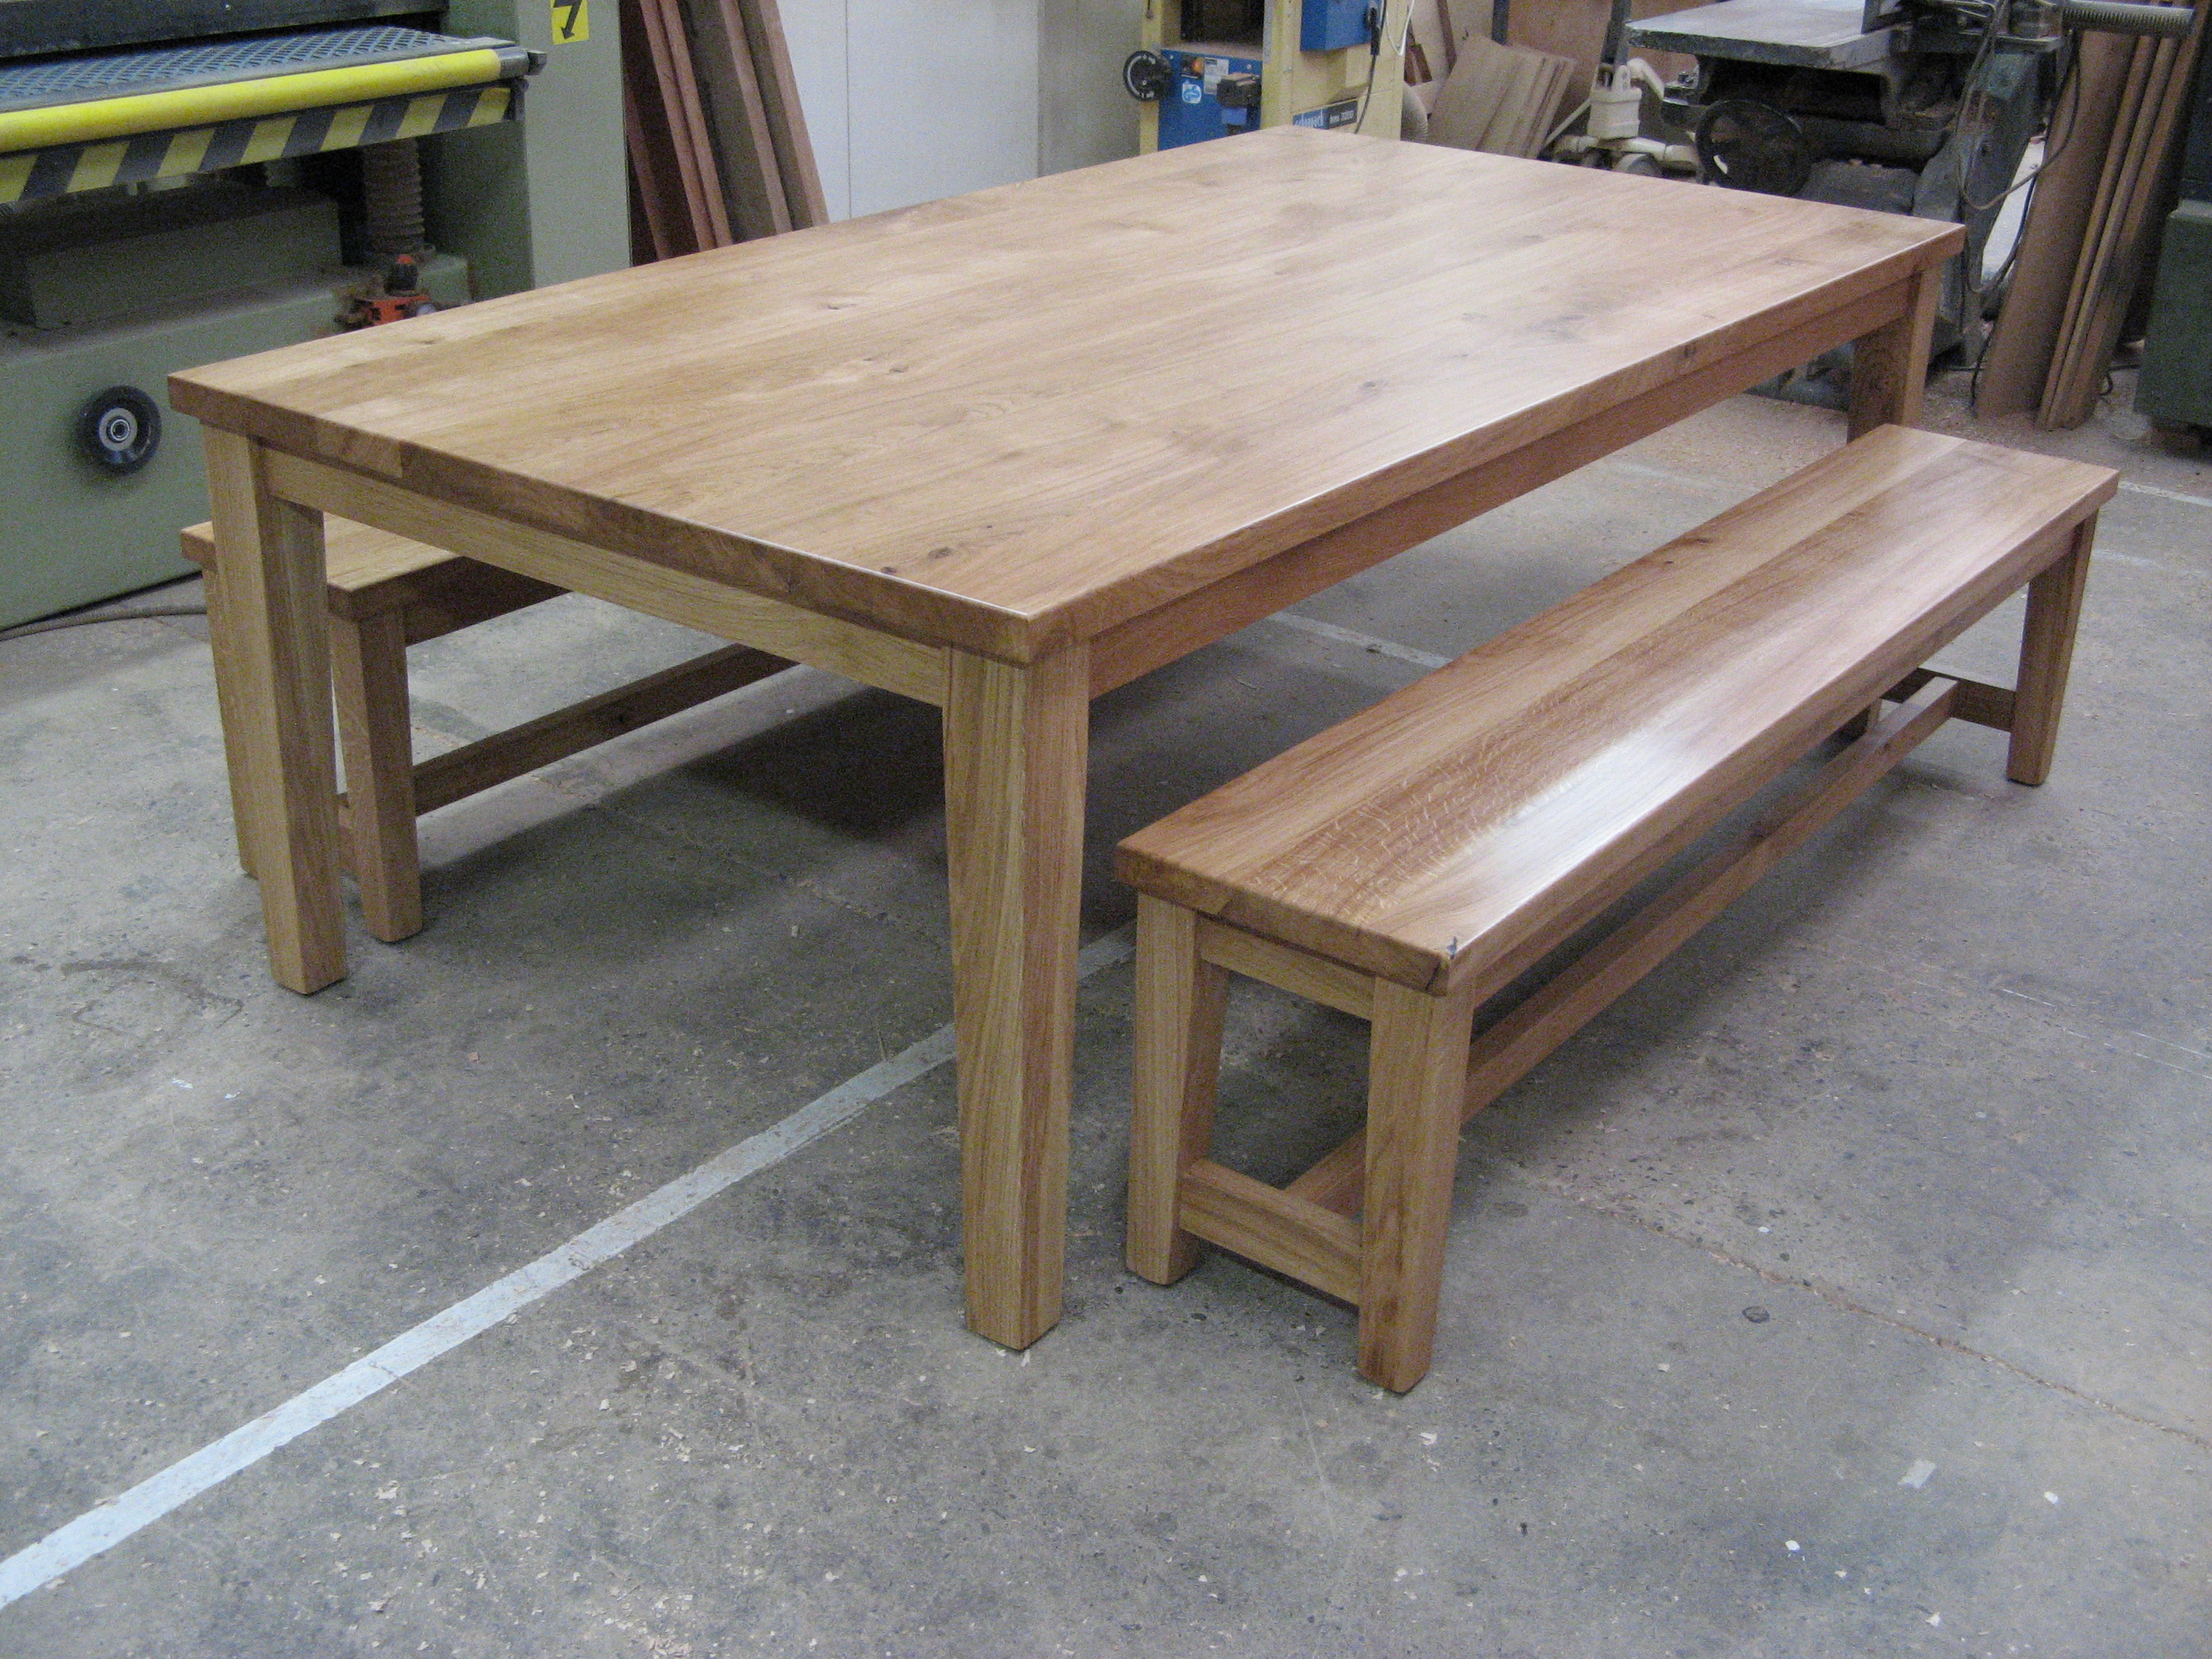 New york table bench seats gavin cox furniture for Dining room tables nz